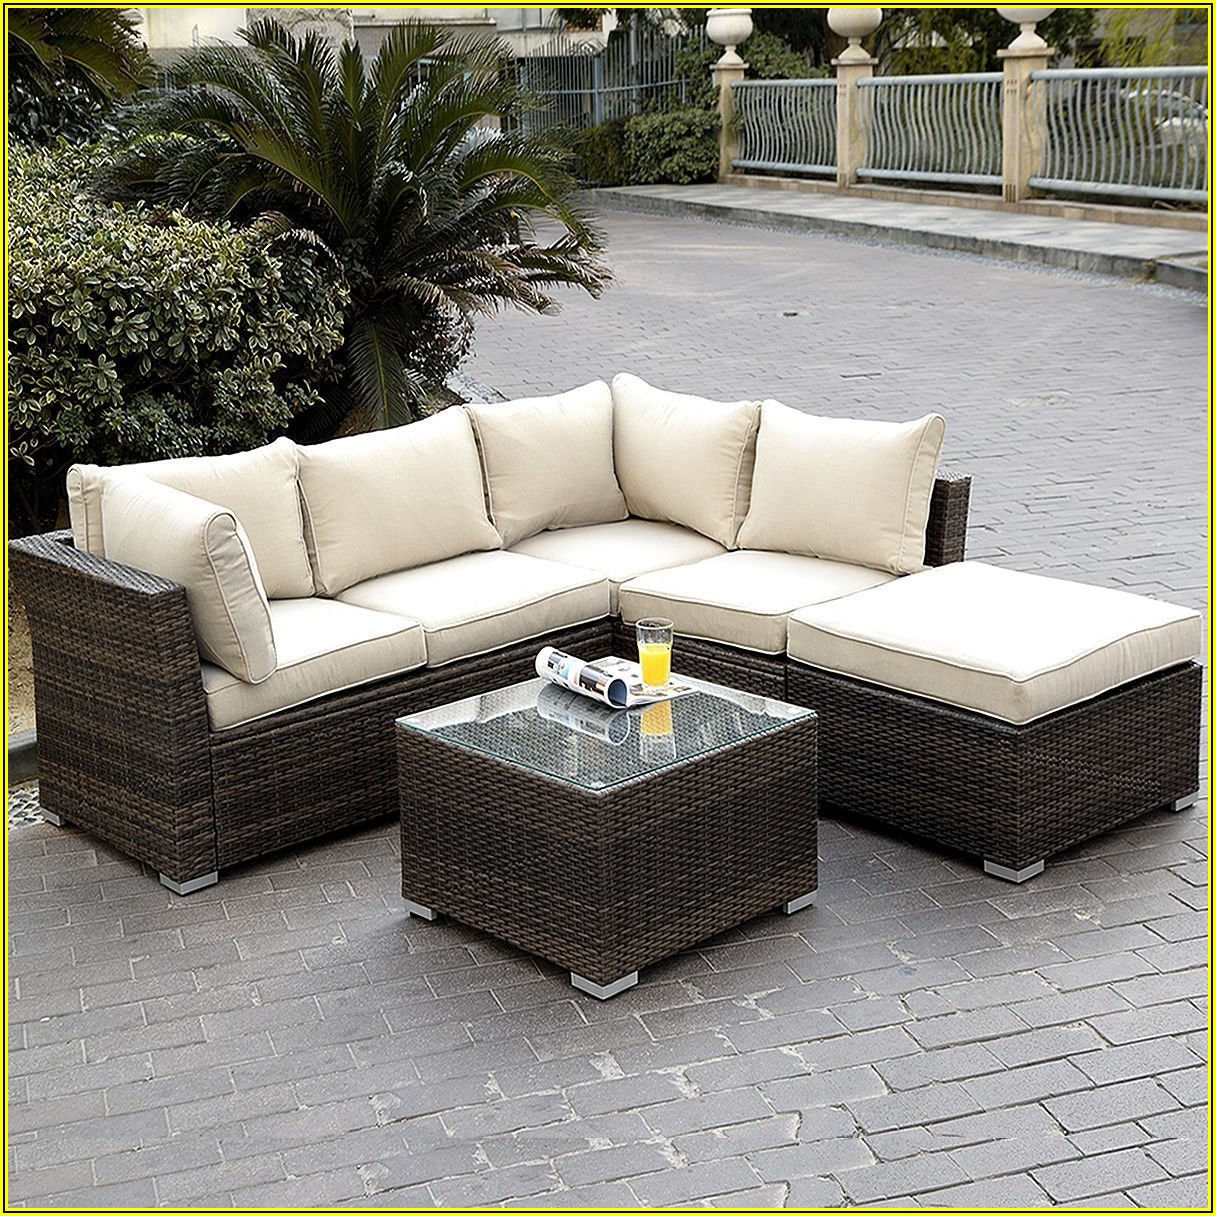 Luxxella Outdoor Patio Wicker Sofa Sectional